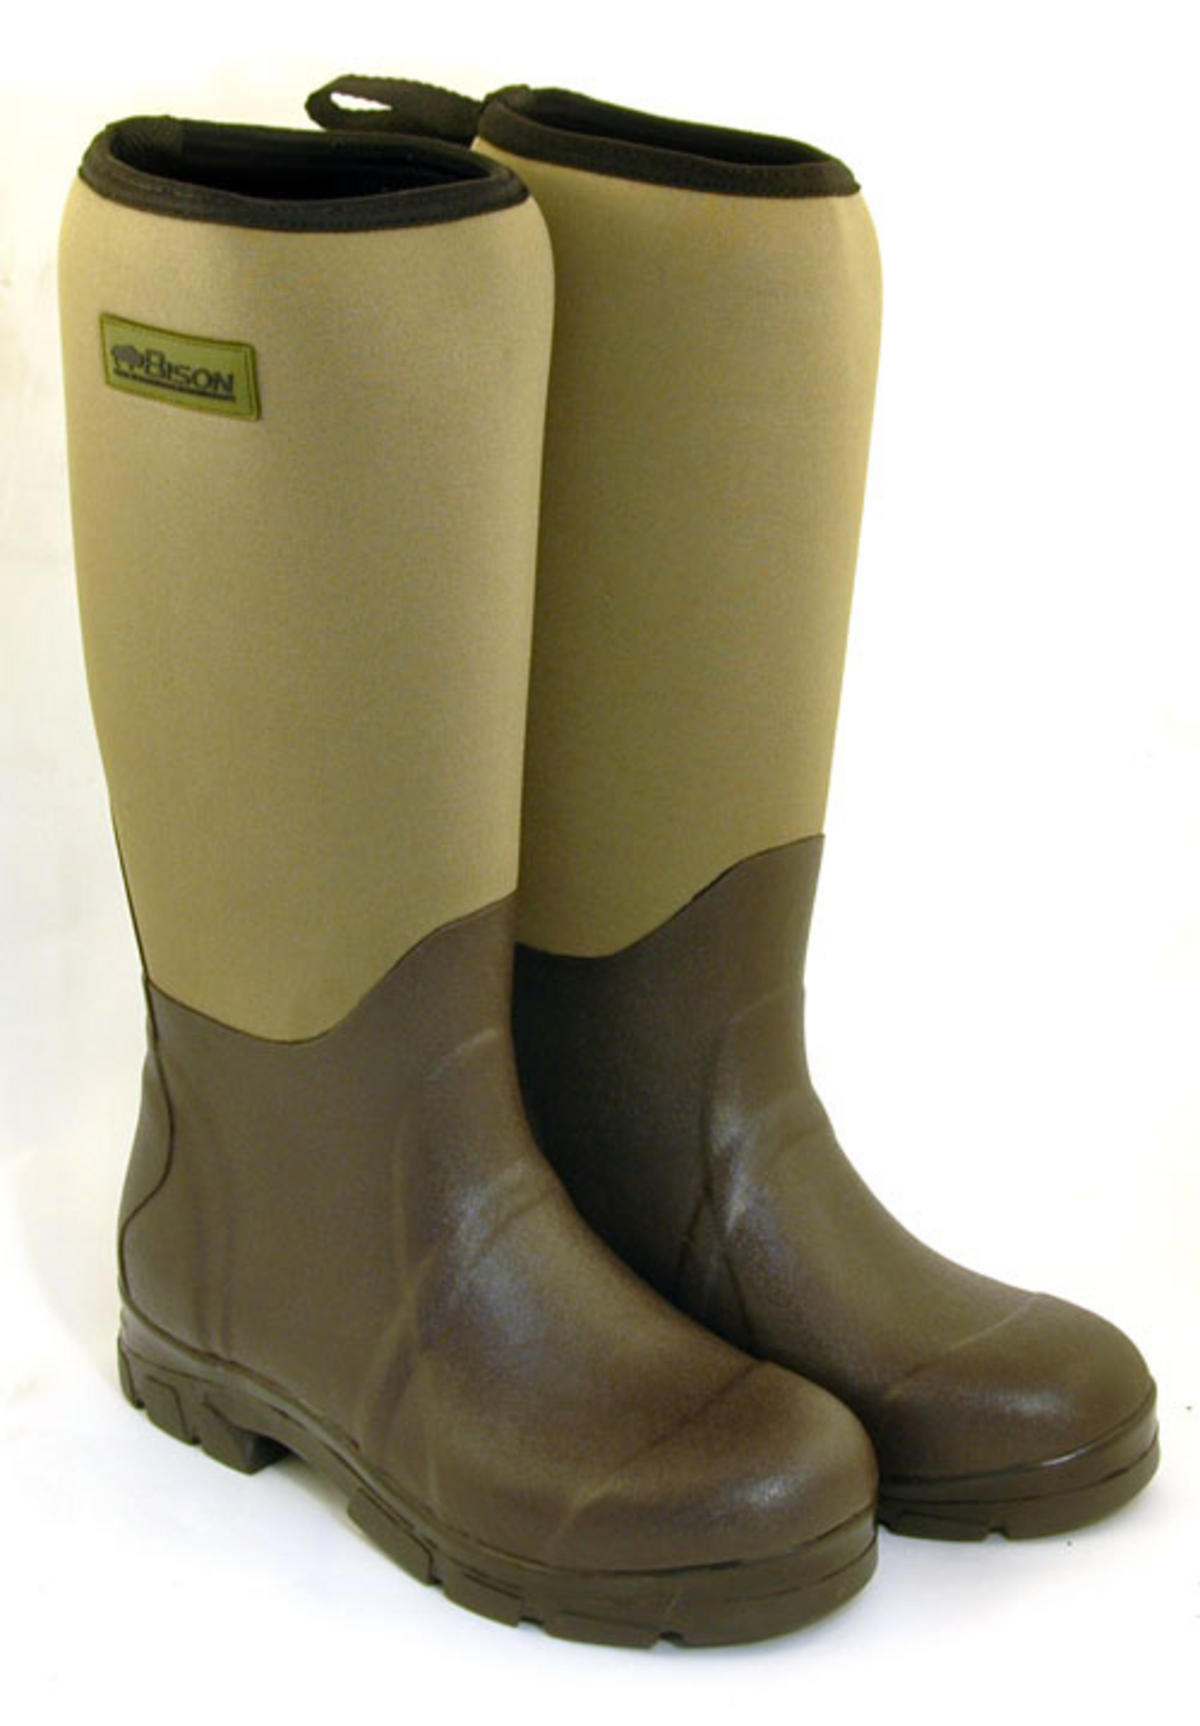 BISON NEOPRENE WELLINGTON MUCK BOOT